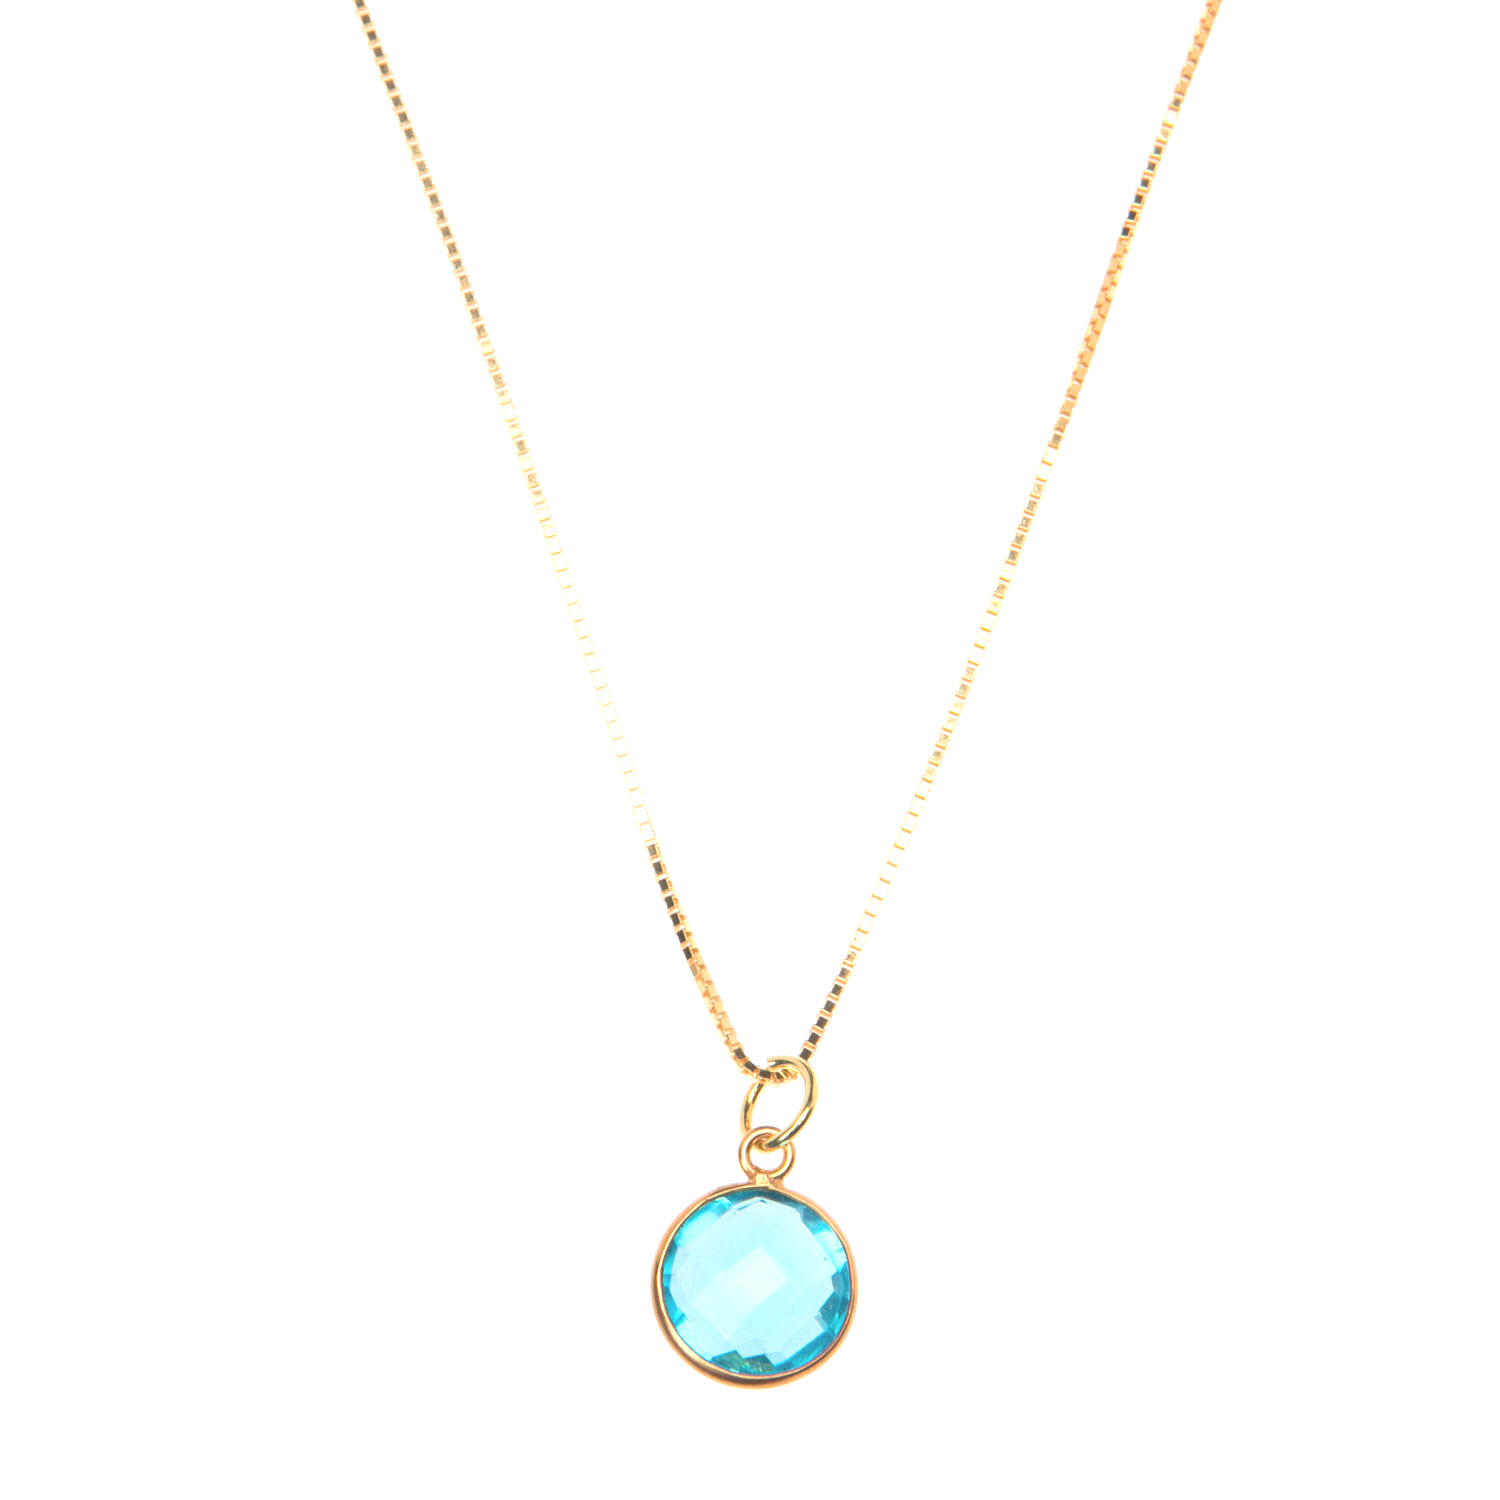 Blue Topaz Pendant on Gold Vermeil Chain